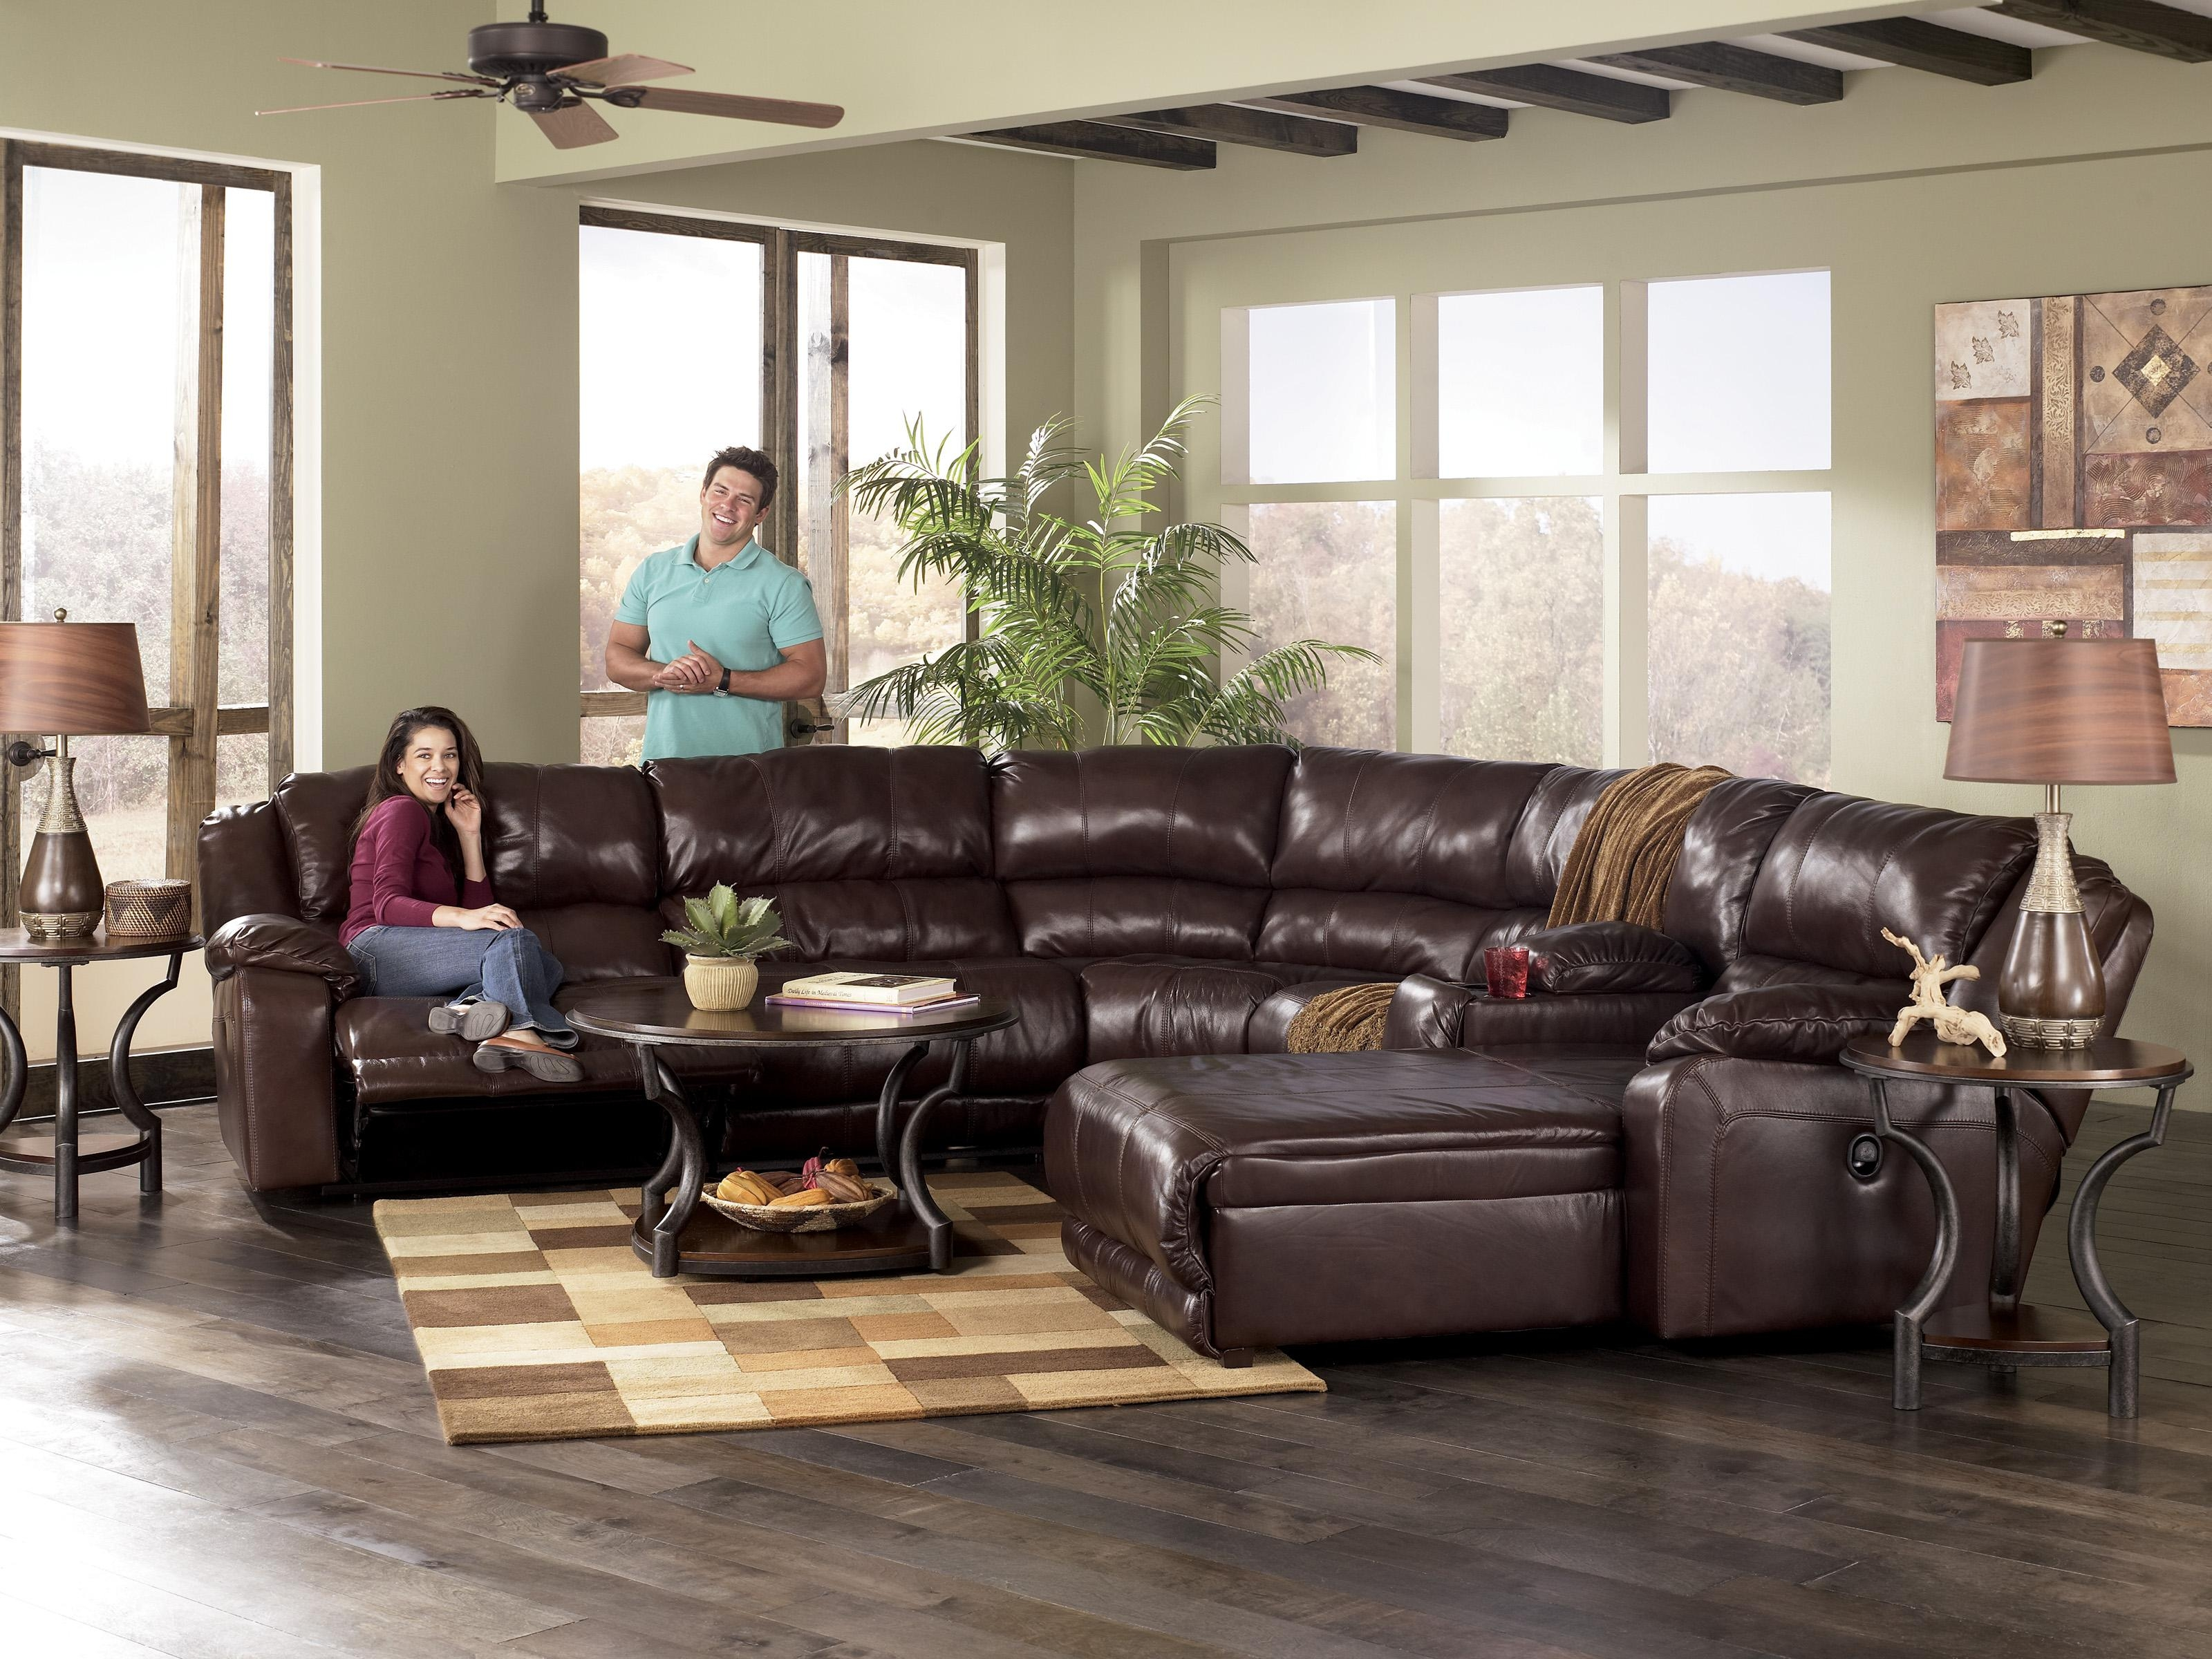 Chair & Sofa: Have An Interesting Living Room With Ashley Within Ashley Furniture Leather Sectional Sofas (View 4 of 20)